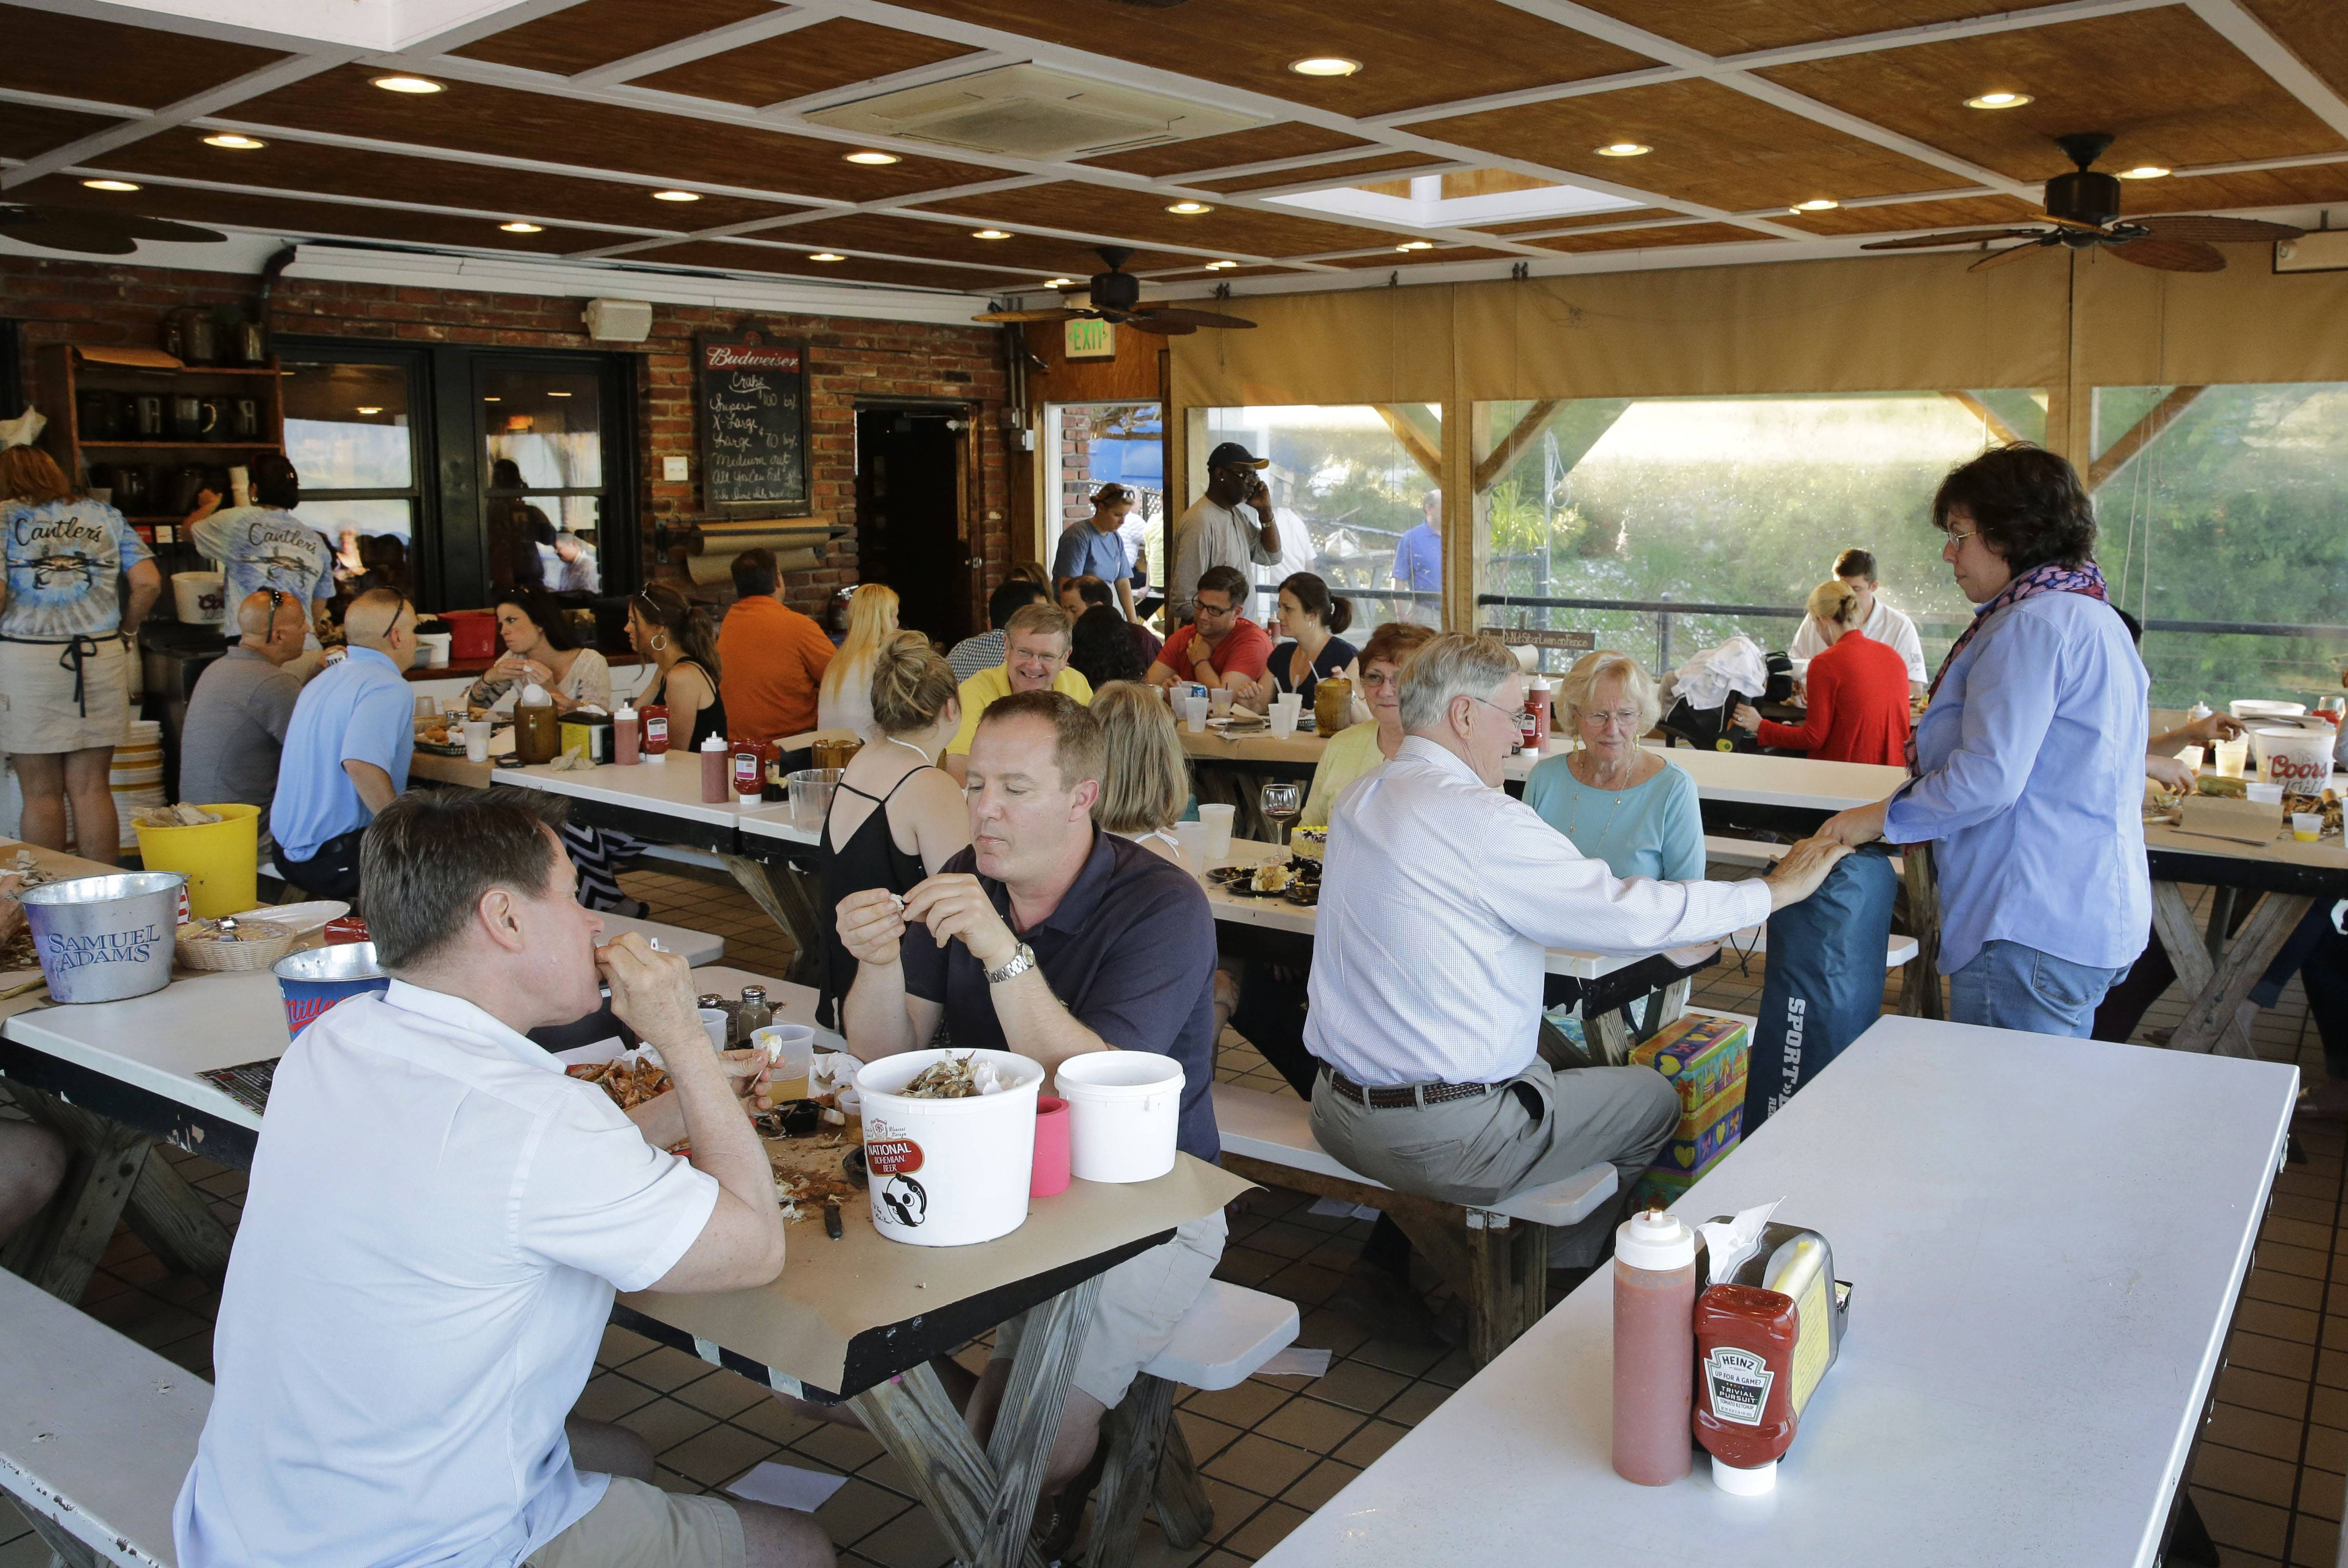 Diners eat at Jimmy Cantler's Riverside Inn in Annapolis, Md.